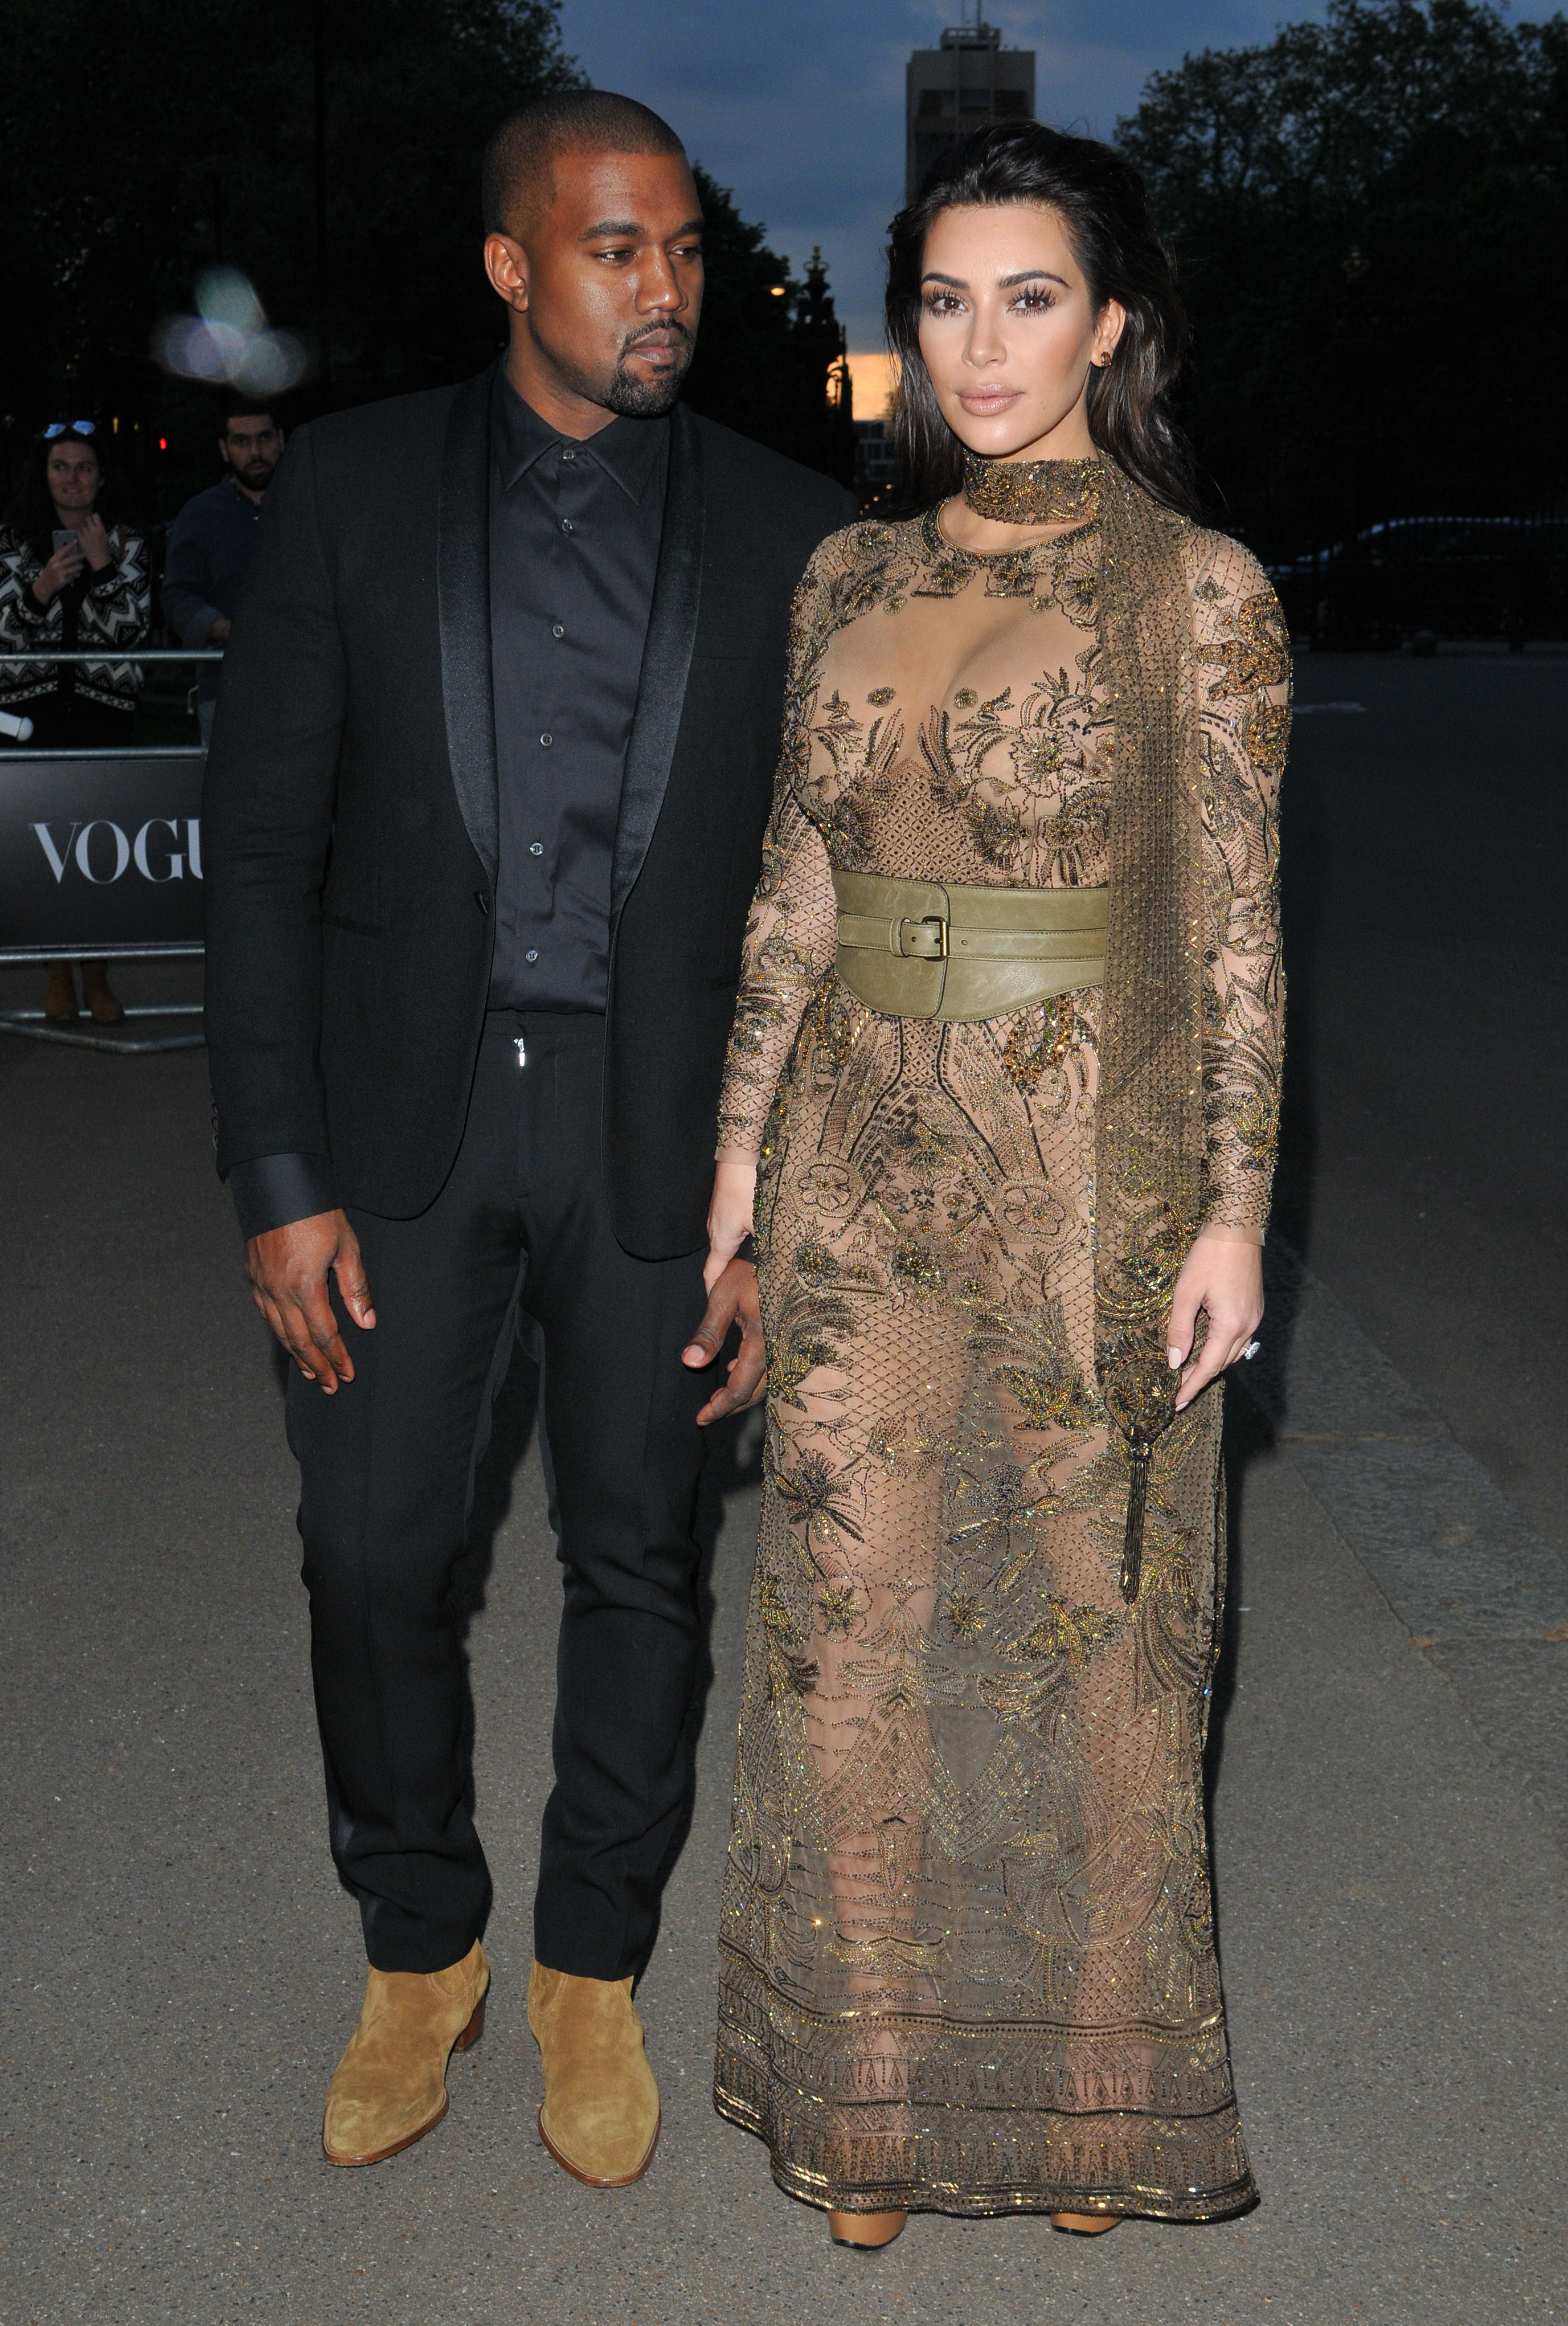 Kimye's exbodyguard claims non disclosure agreement was forged